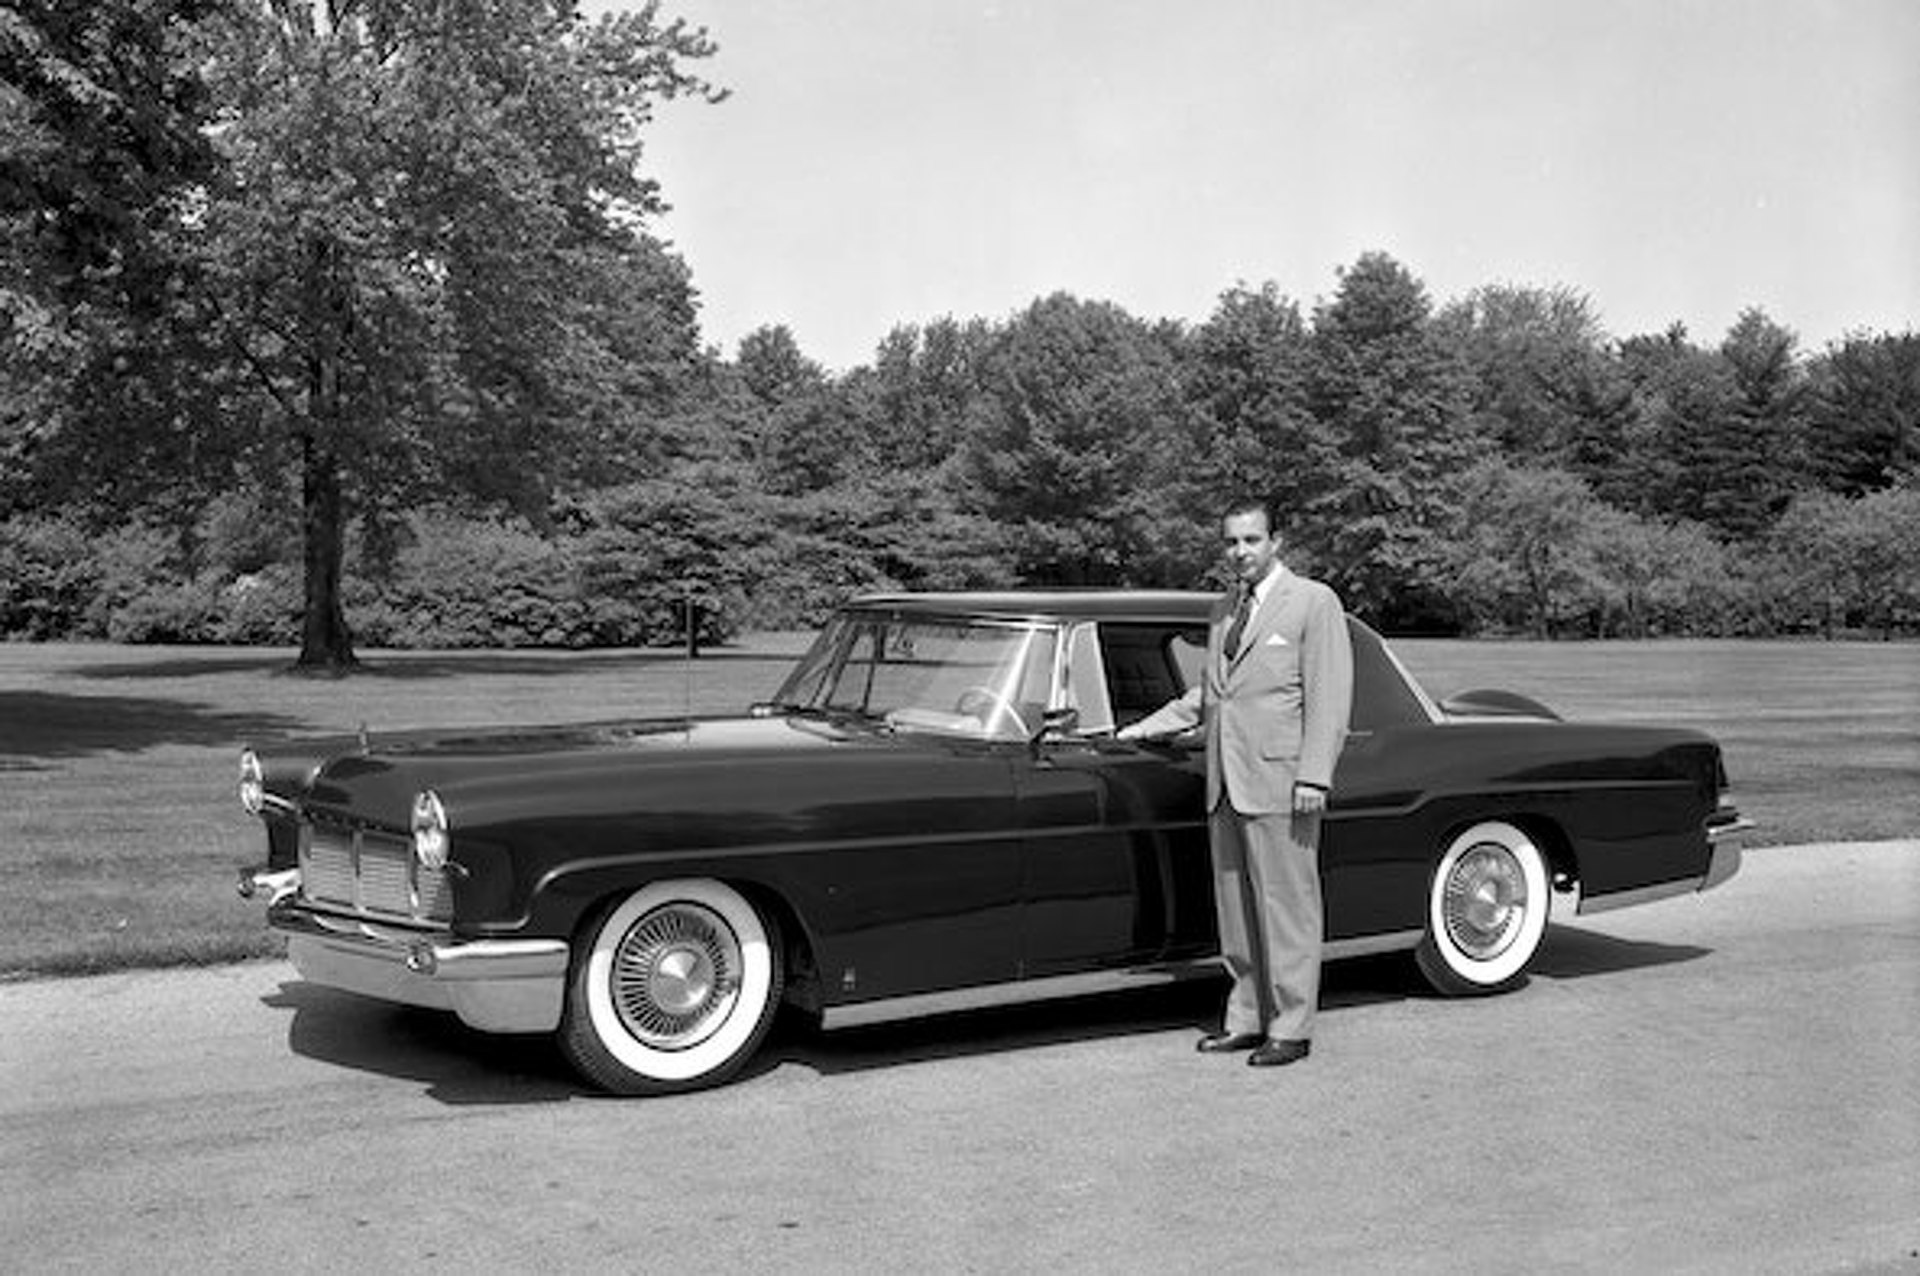 William Clay Ford, the Continental Project, and the Quest for Excellence